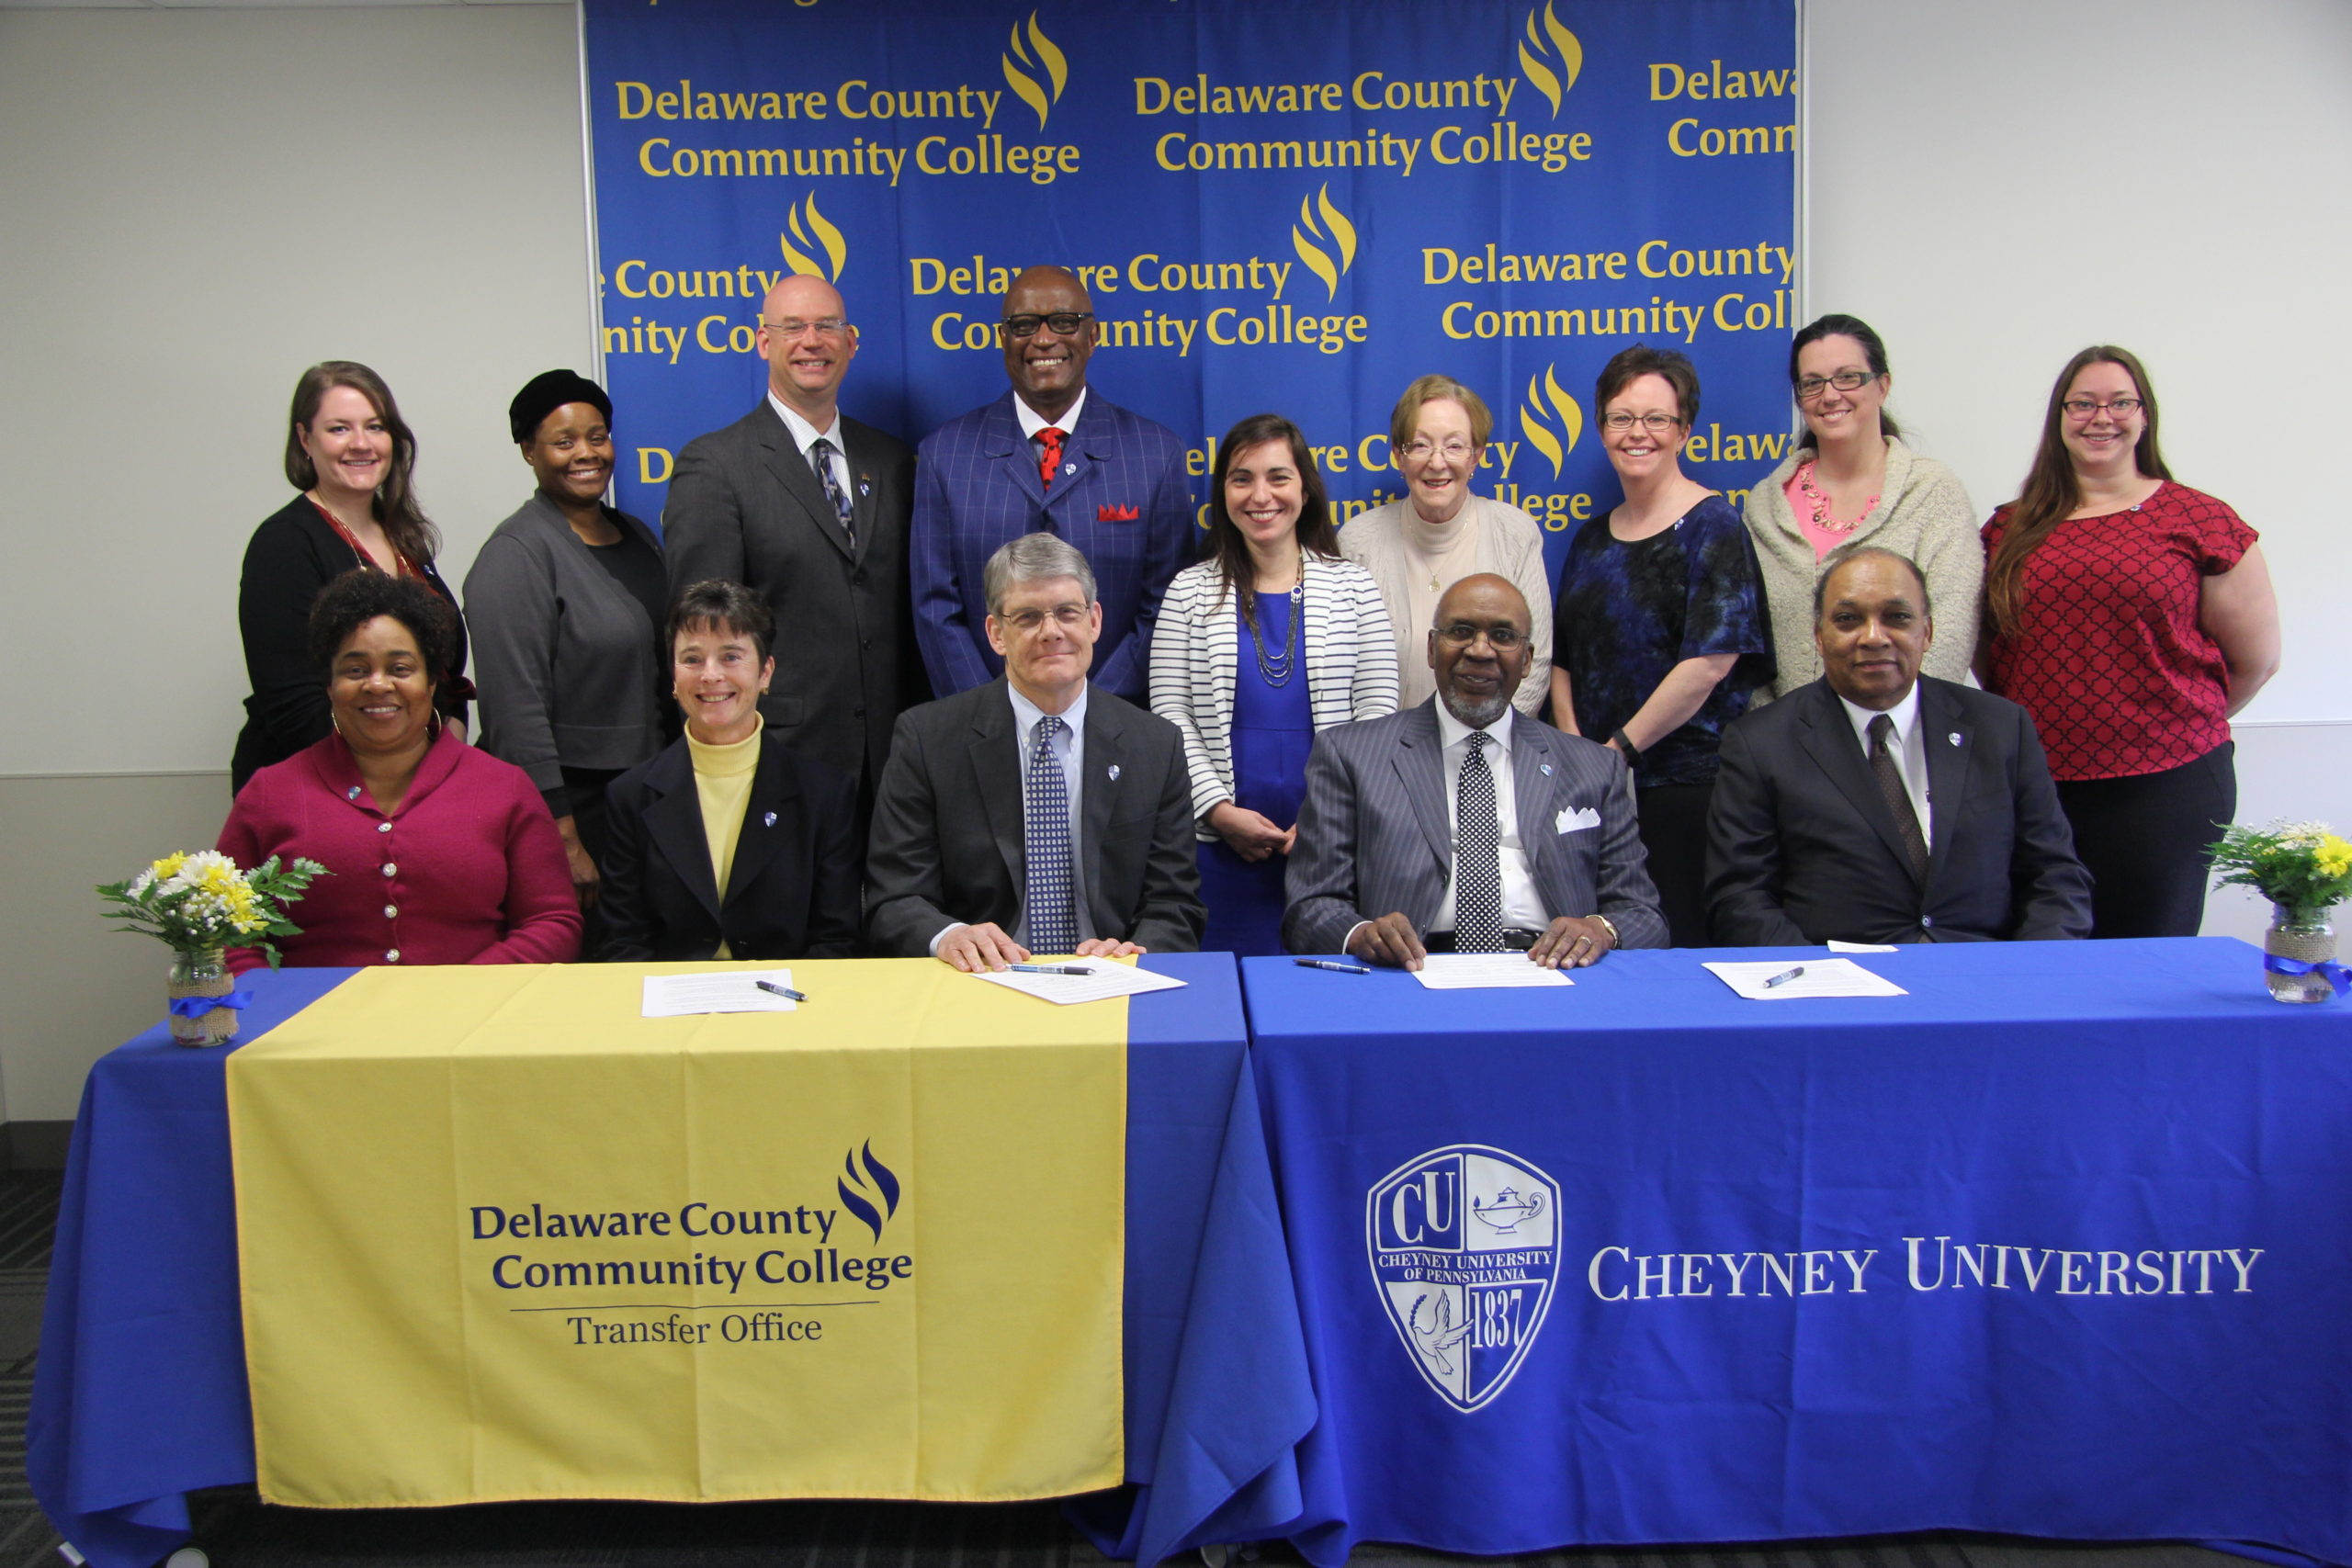 DCCC and Cheyney University Sign Student Transfer Deal